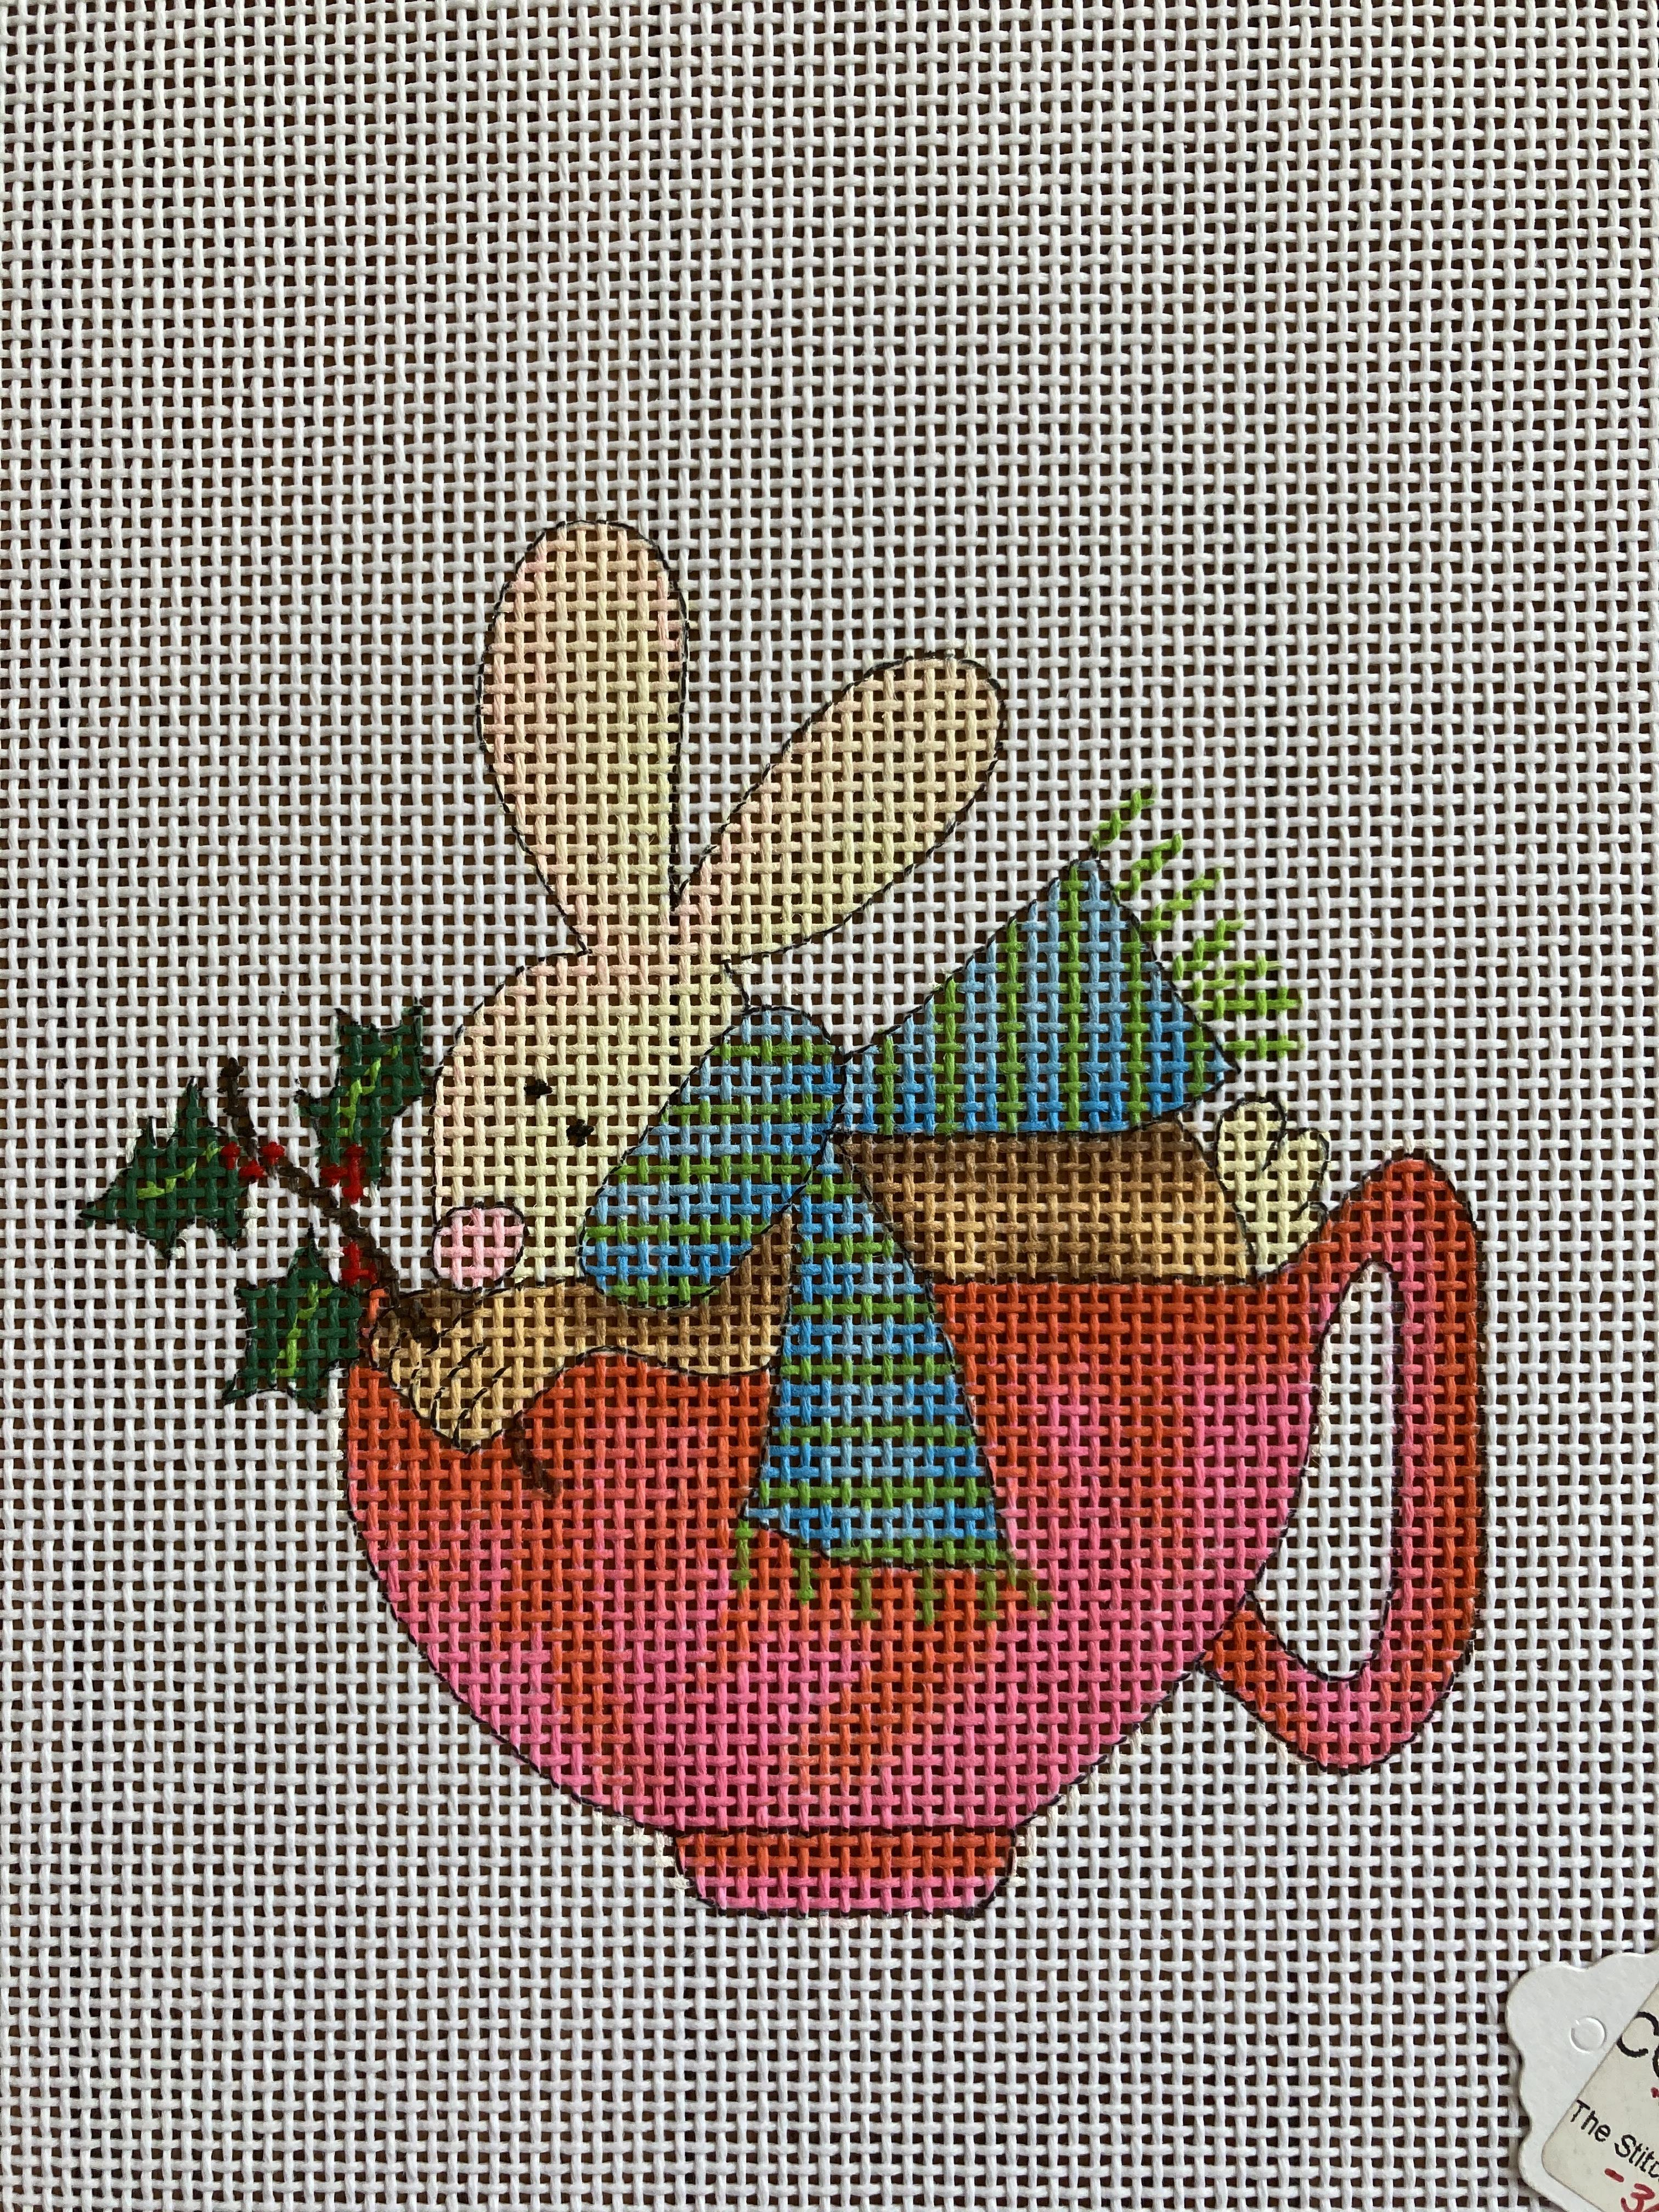 Bunny in a Teacup Ornament